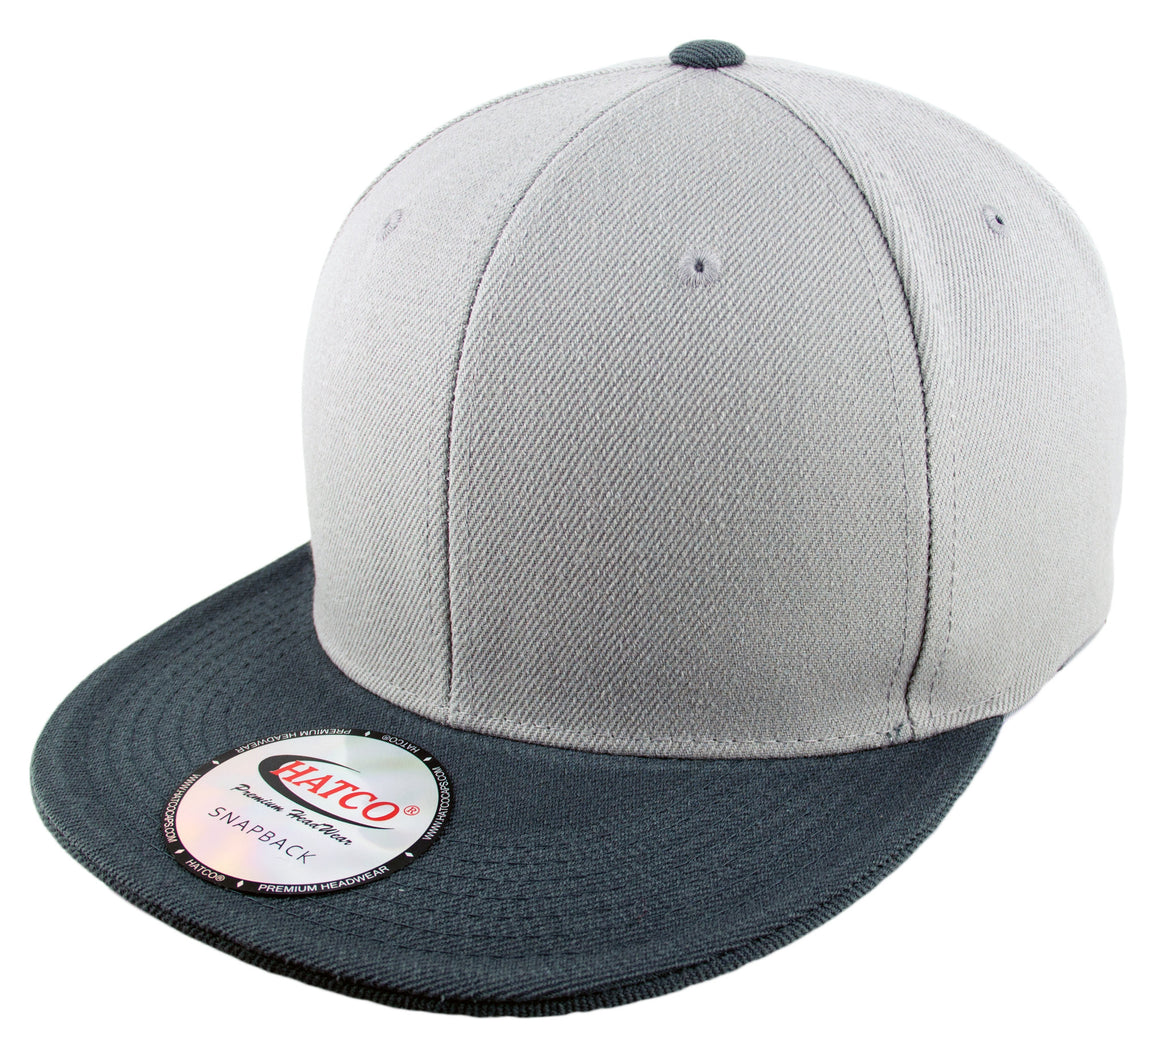 Blank Acrylic Two-Tone Snapback Cap - Light Grey/Anthracite - HATCOcaps.com